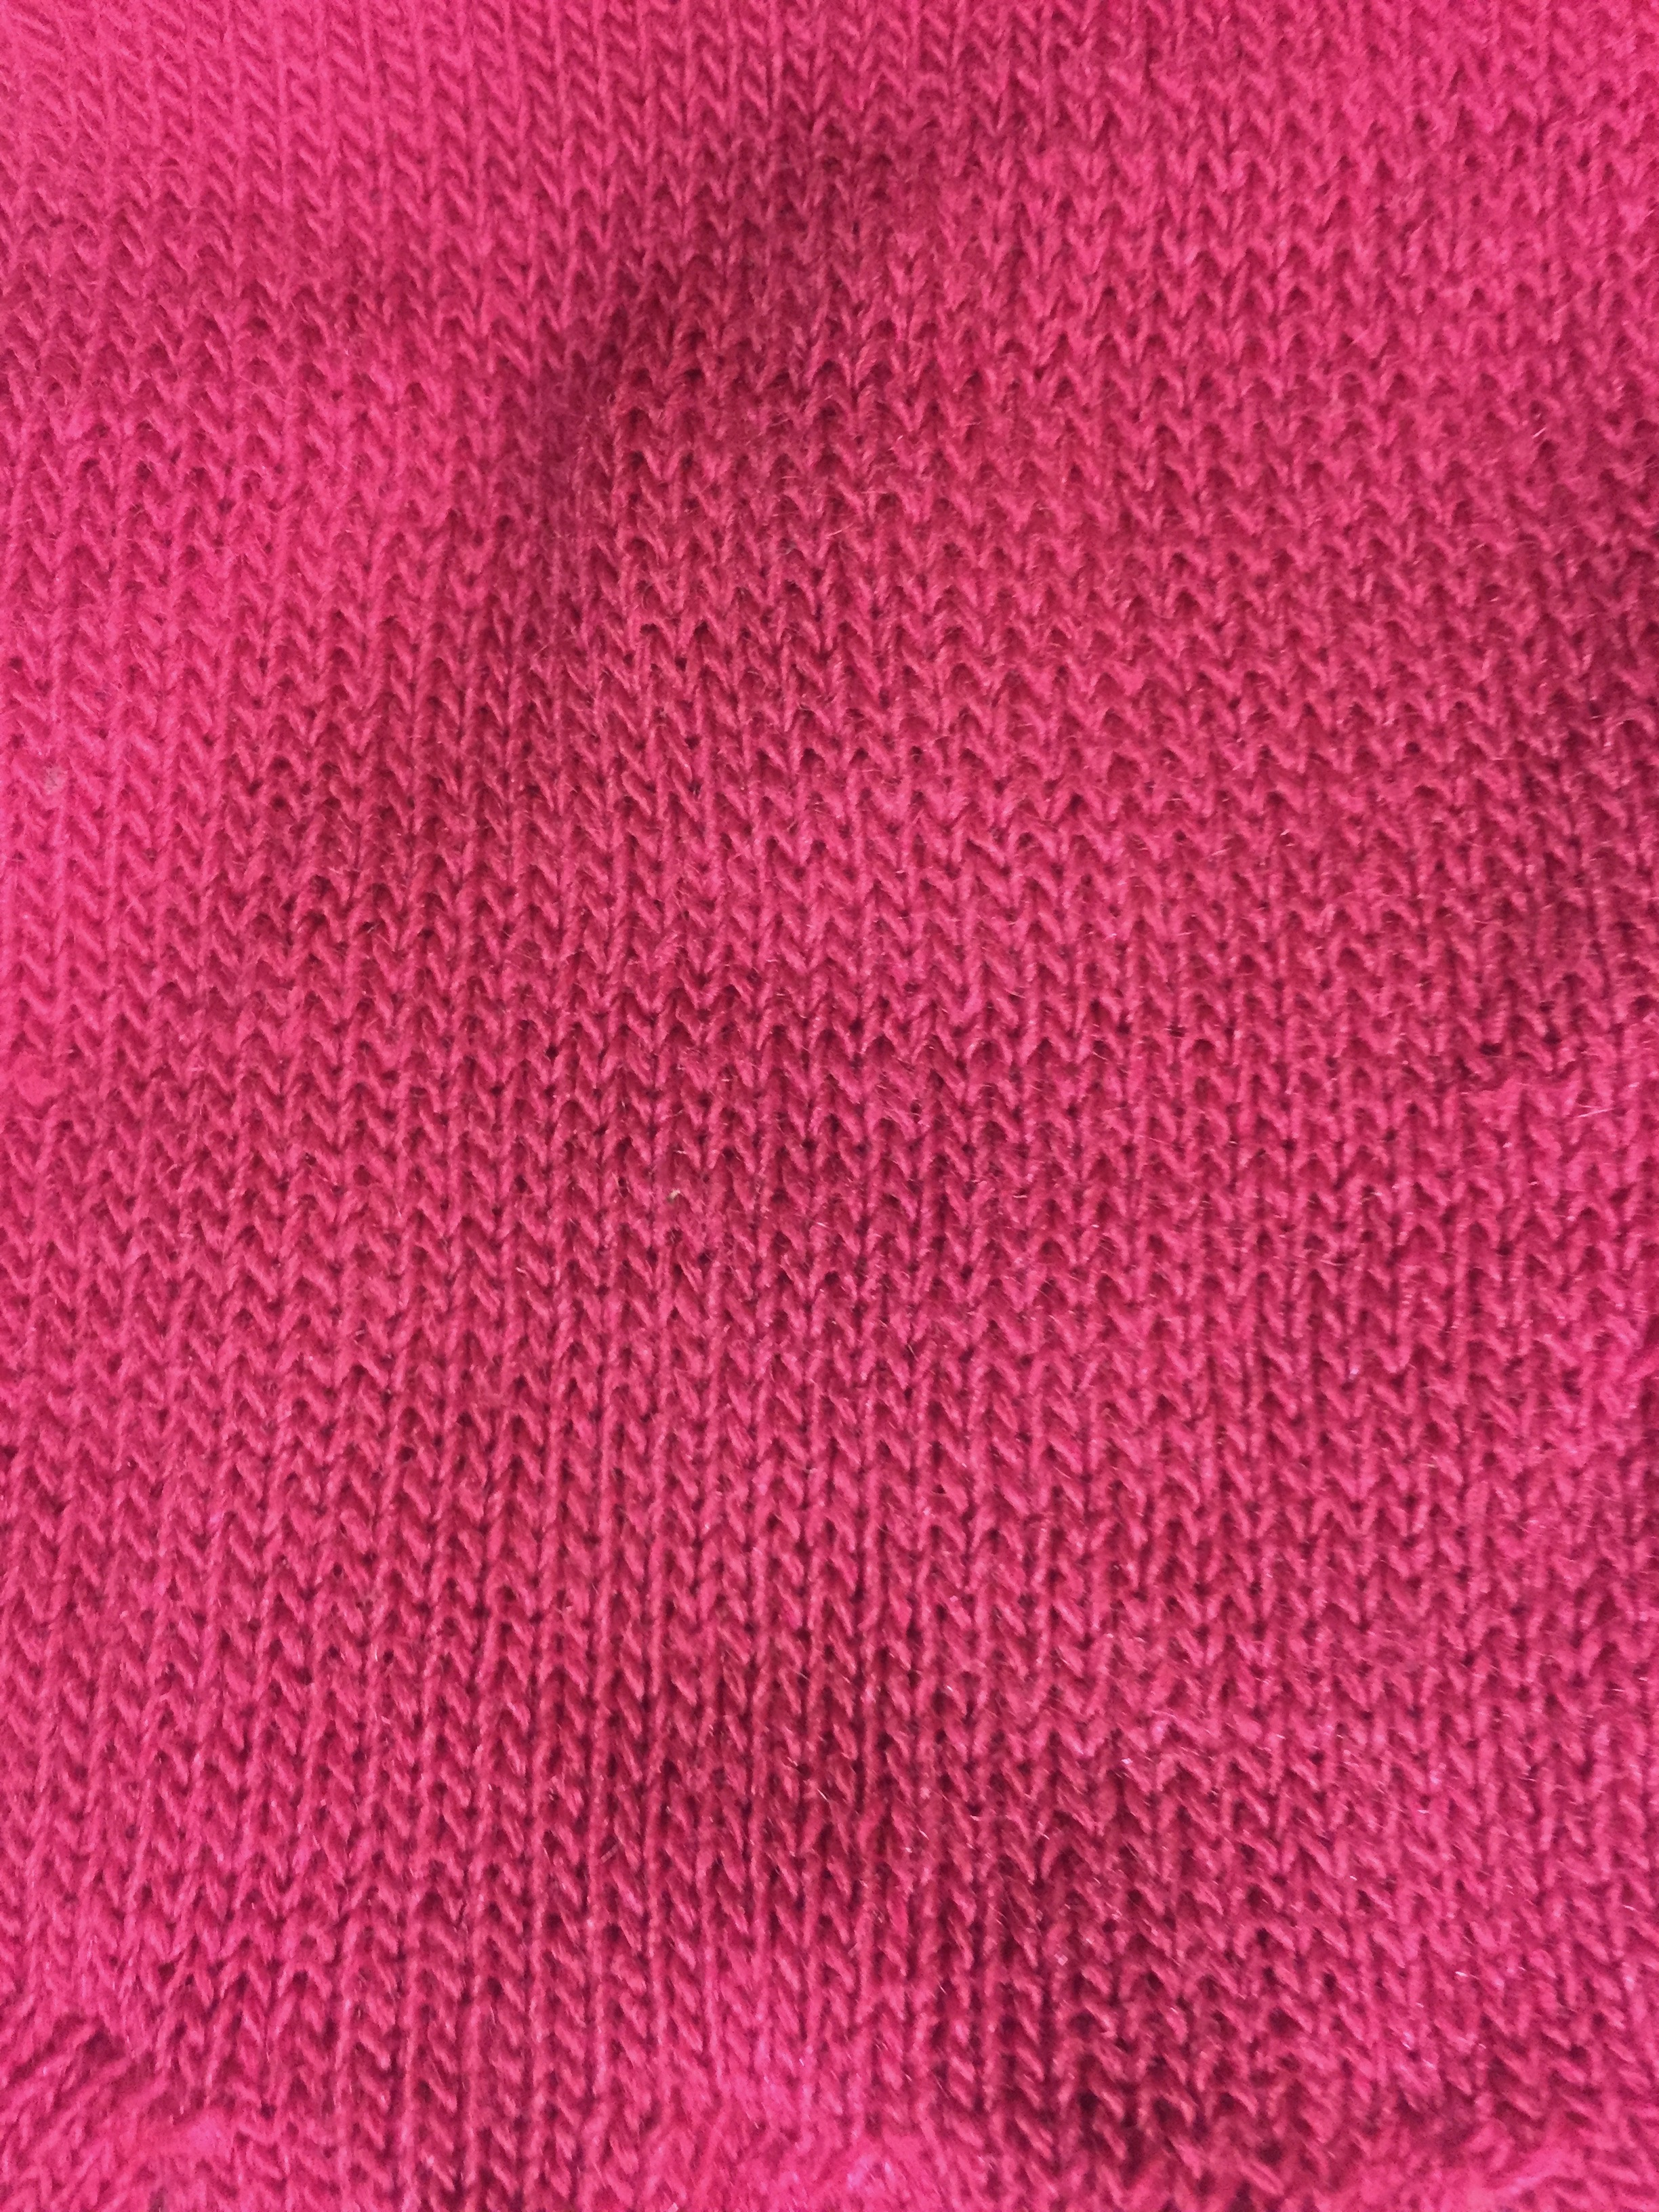 a0ad54adc1c Close up of pink knitted cotton glove | Free Textures